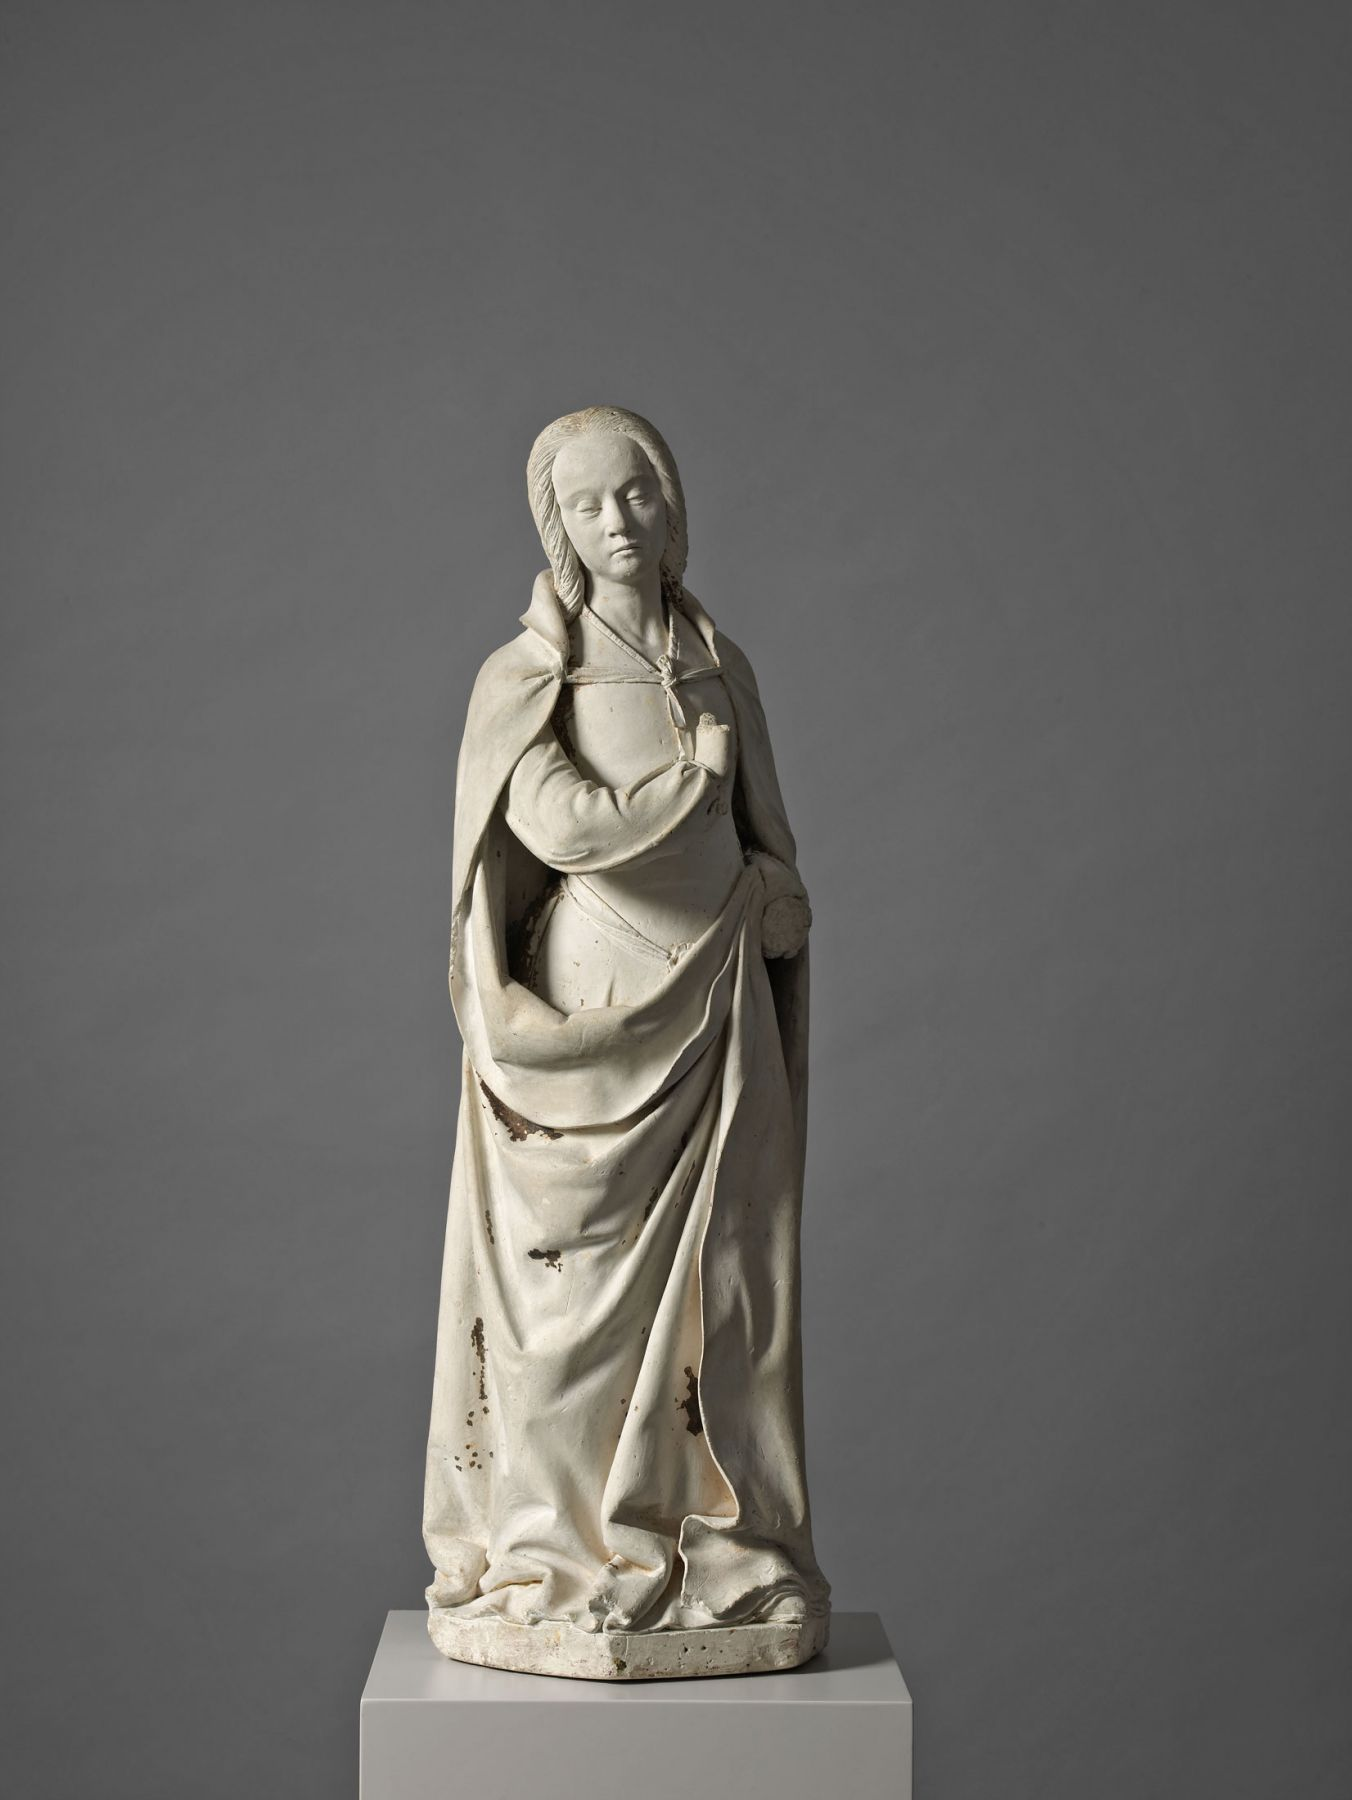 Guillaume Regnault (c. 1450-1530, attributed), The Virgin Annunciate